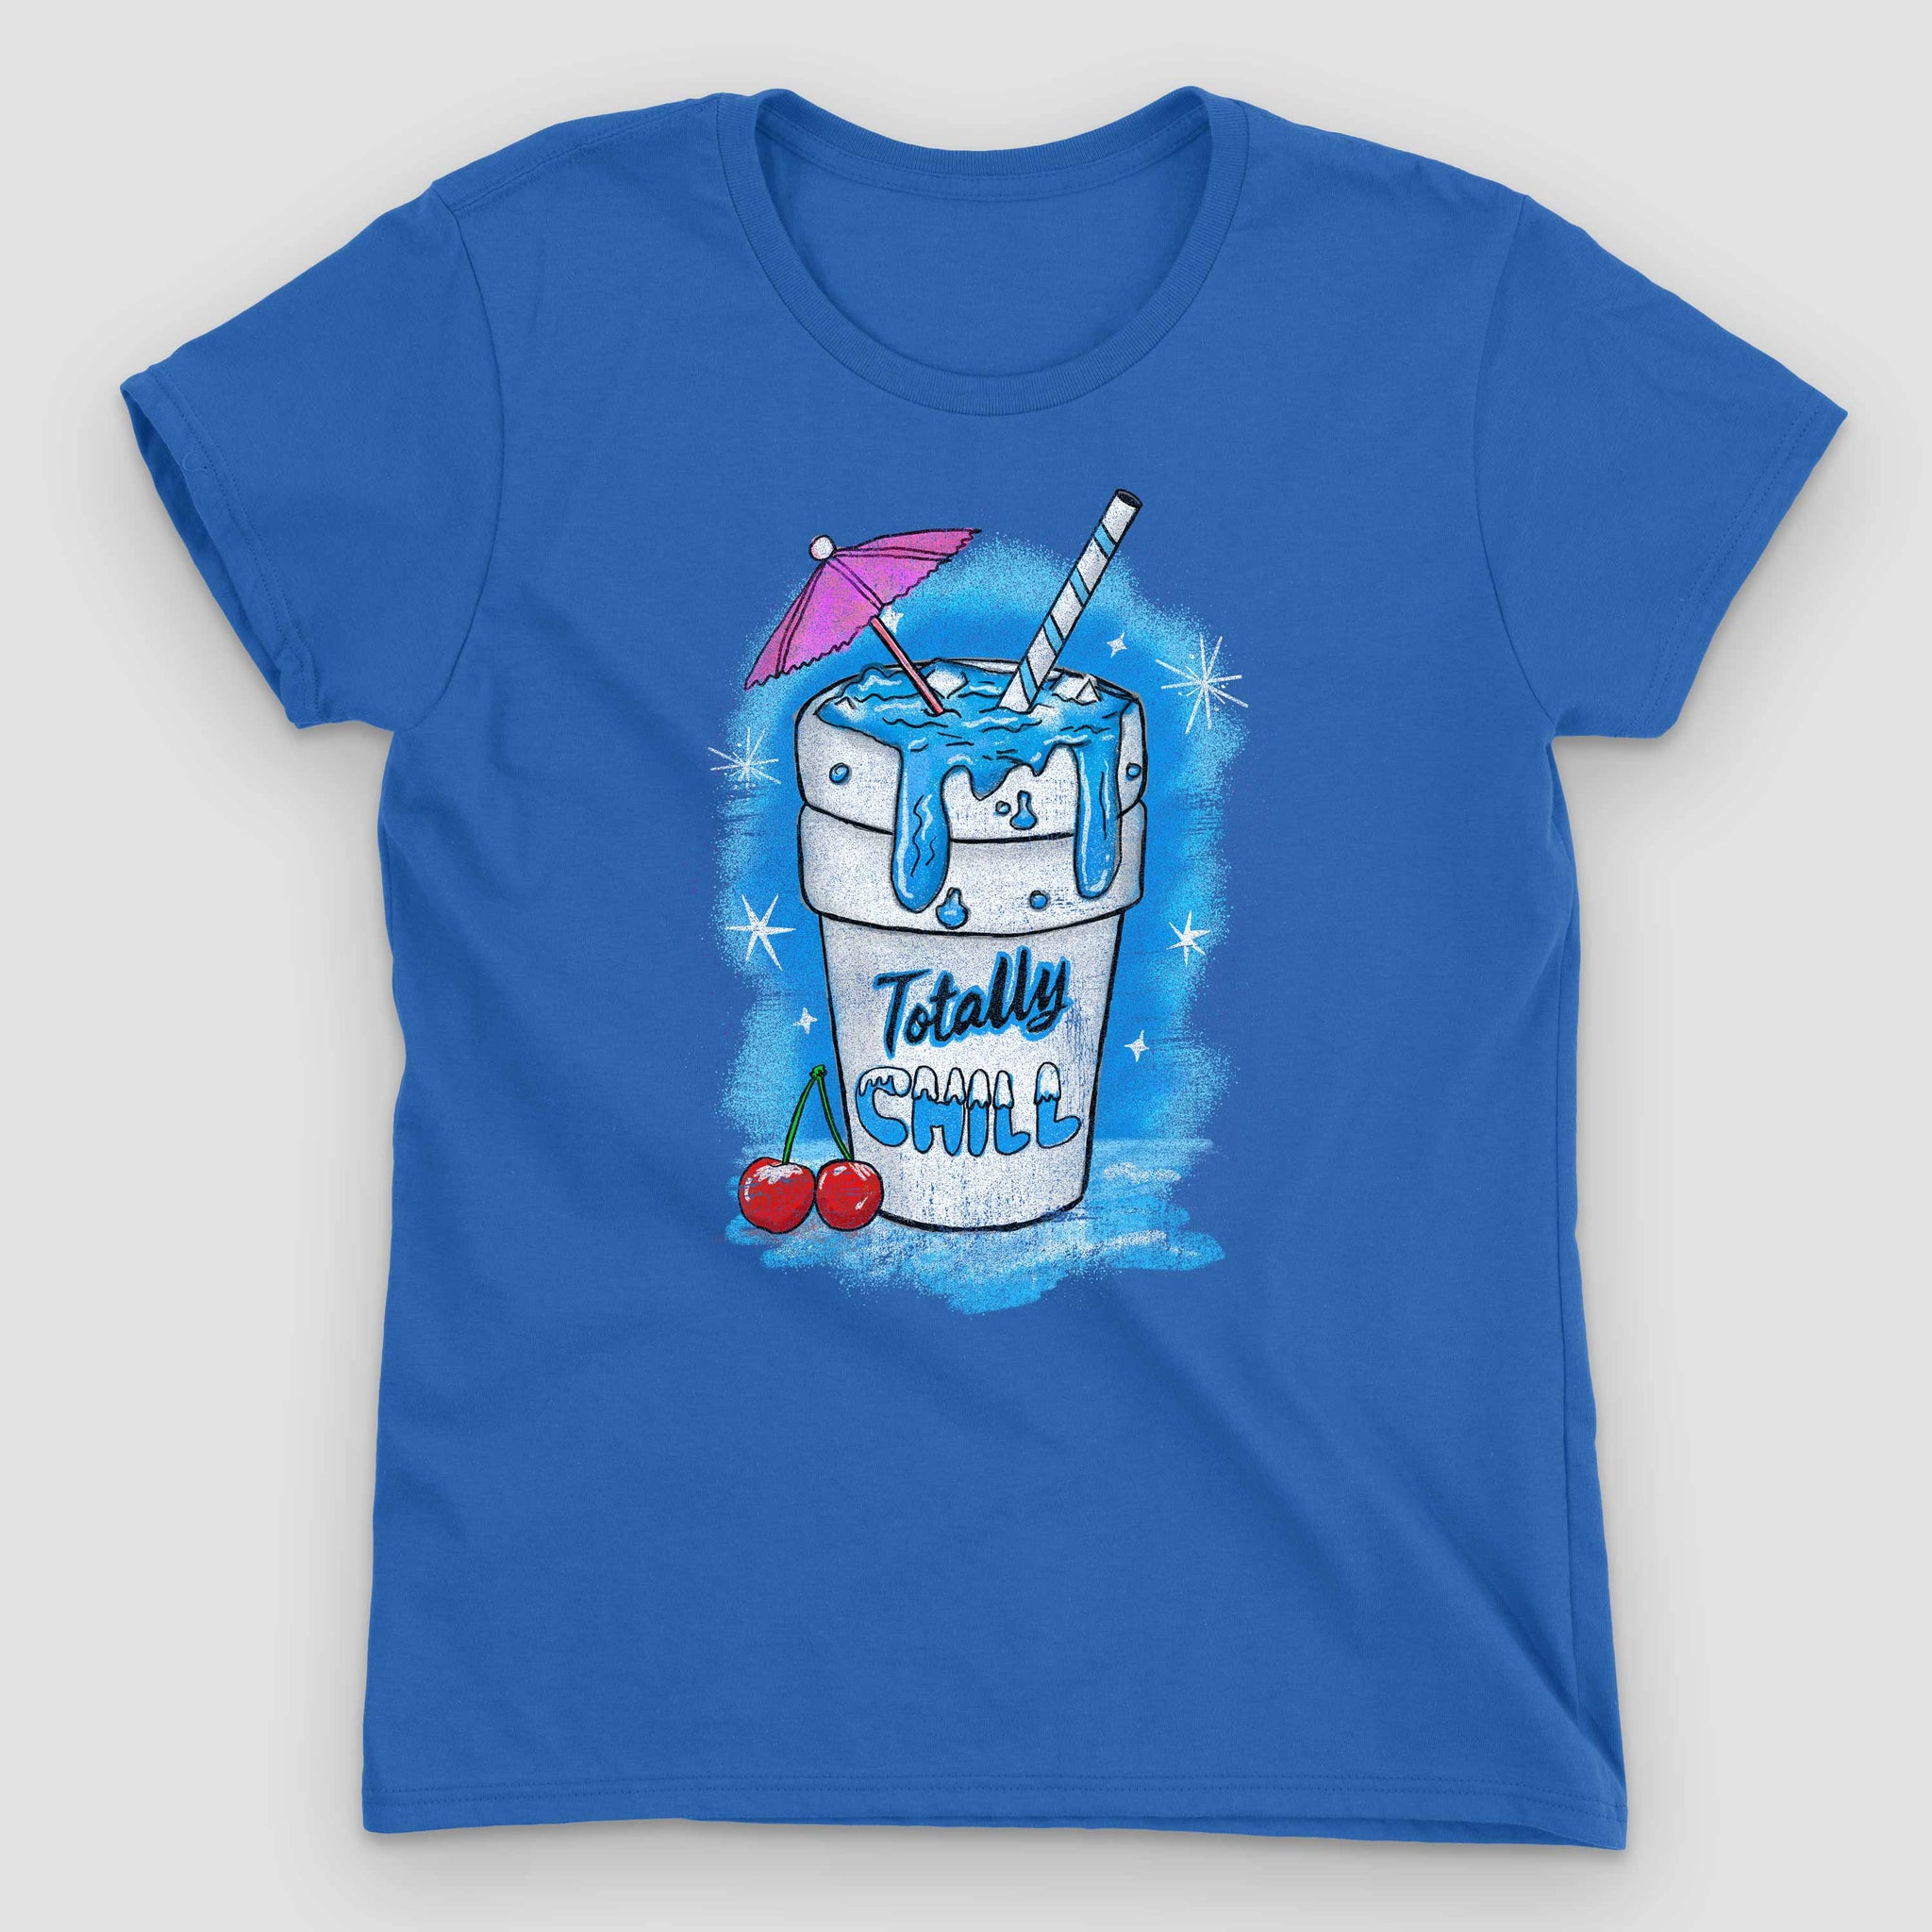 Totally Chill Women's Graphic T-Shirt